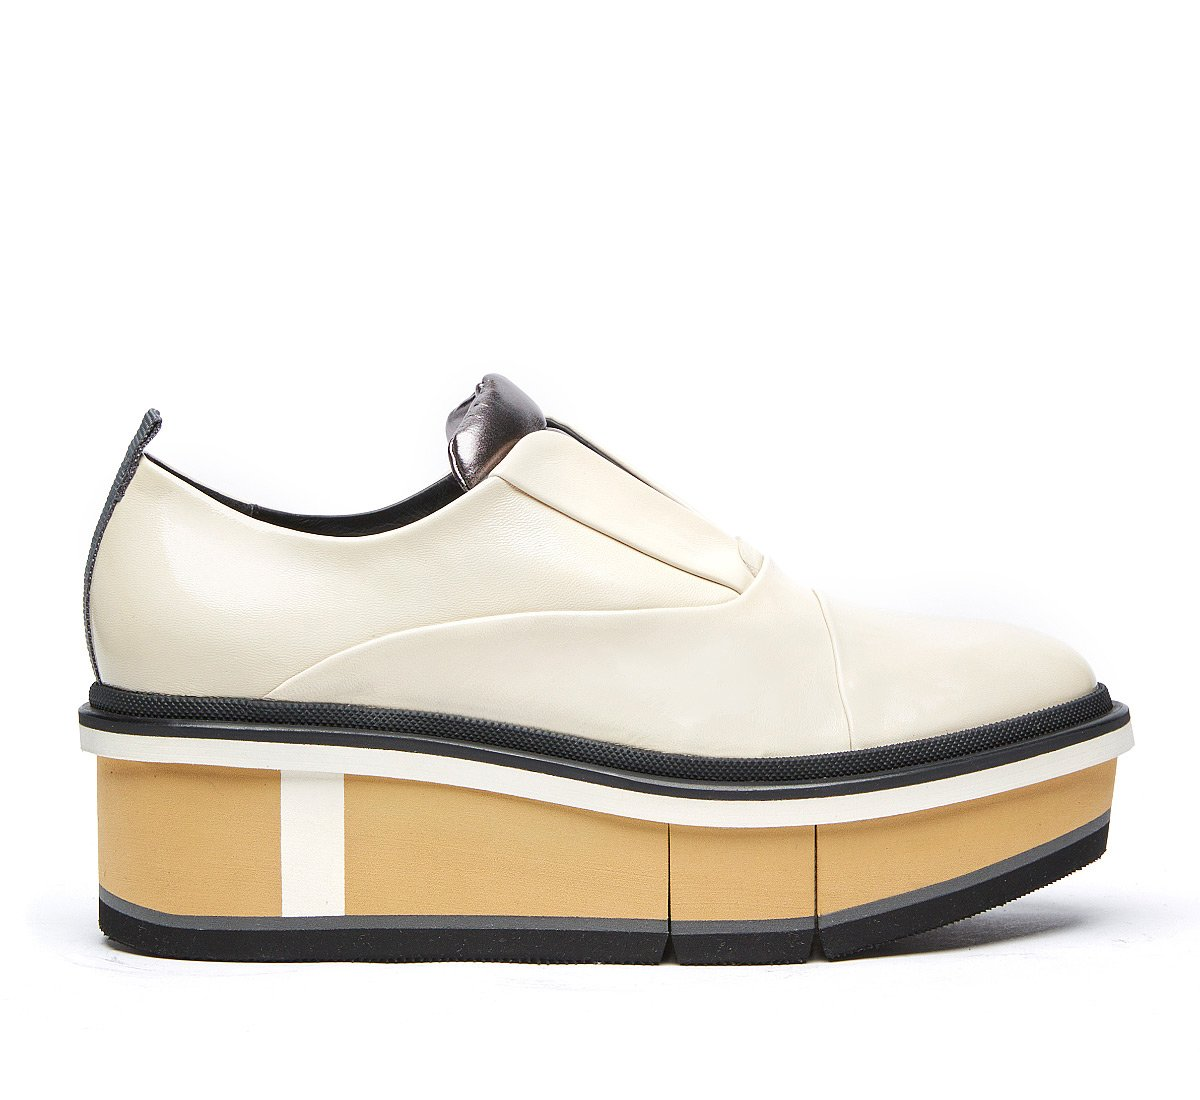 Fabi MICRO Oxford shoe